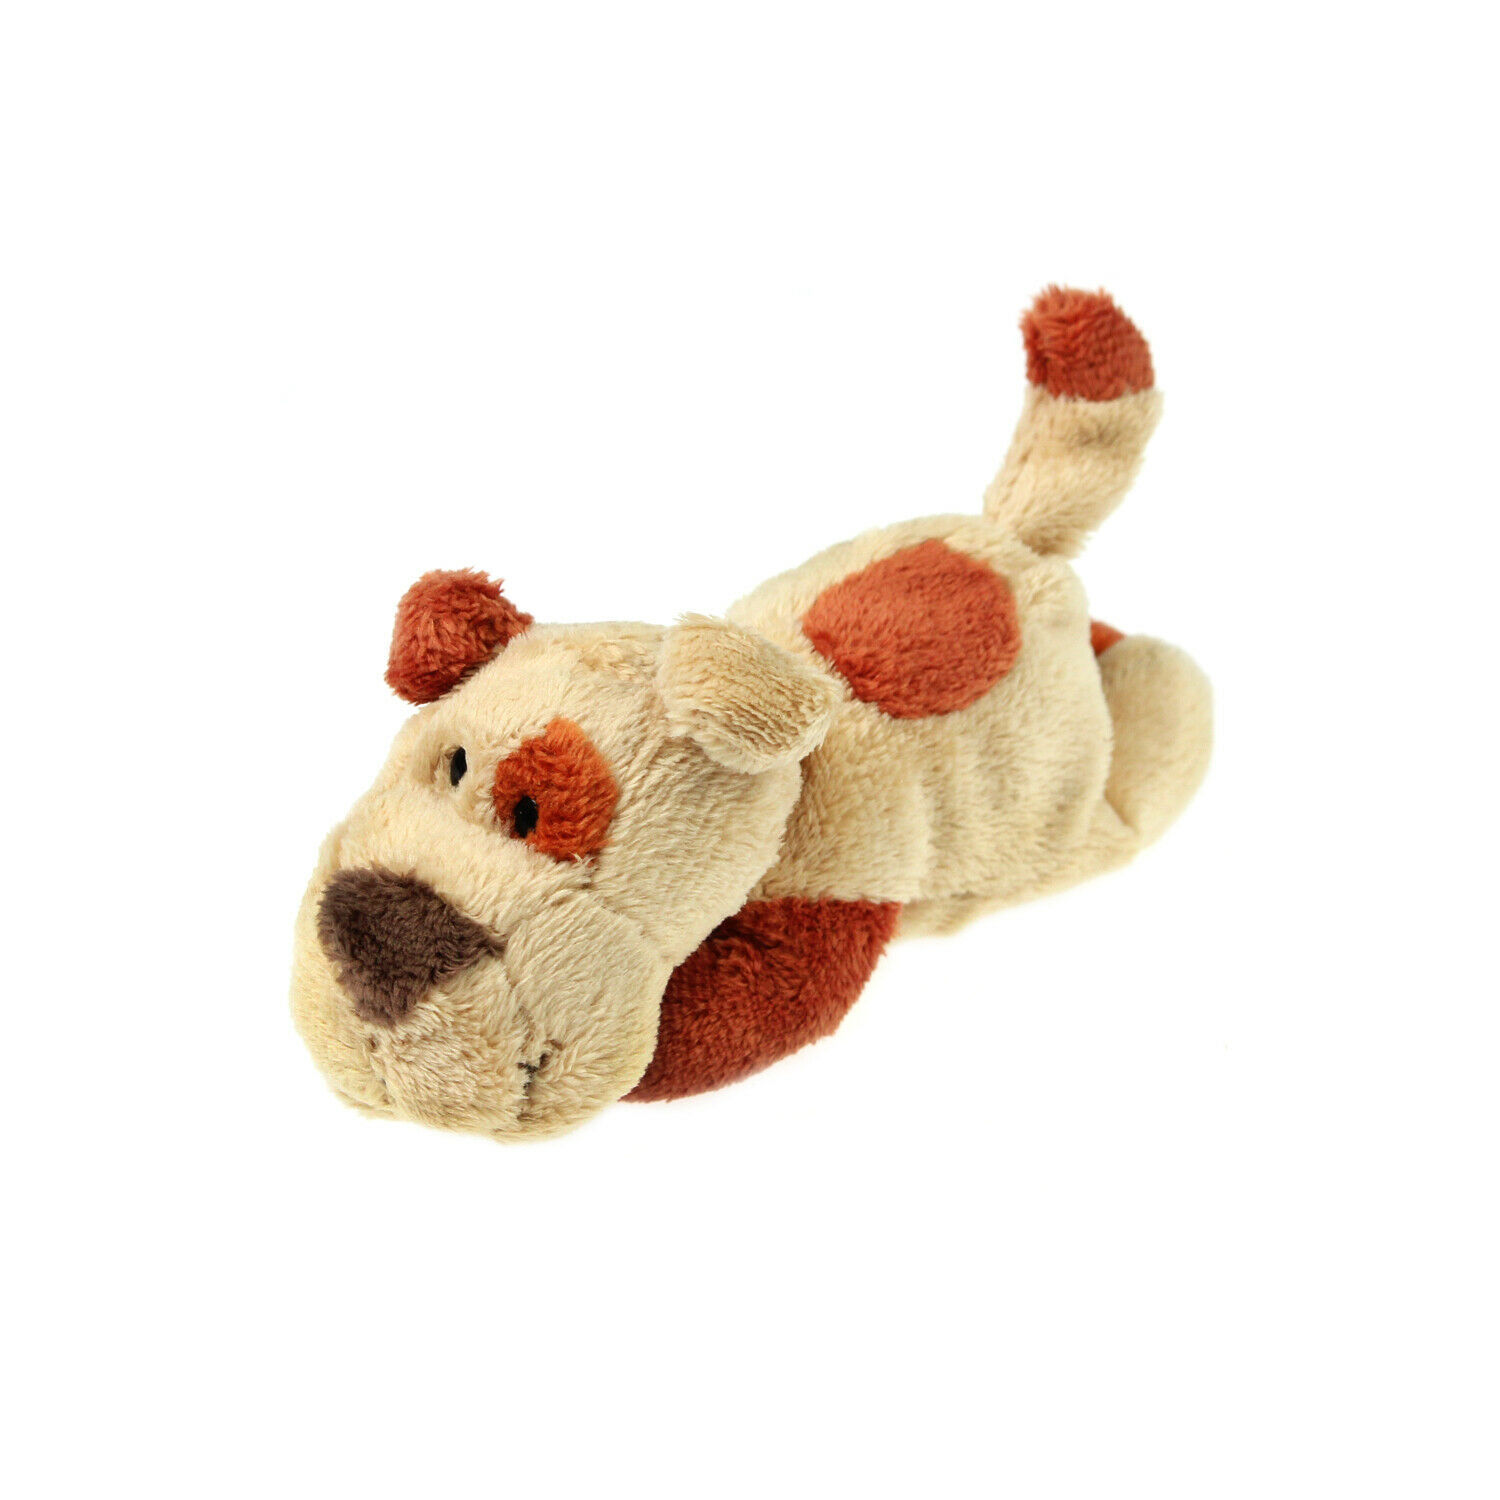 Primary image for MagNICI Dog Brown Stuffed Toy Animal Magnet in Paws 5 inches